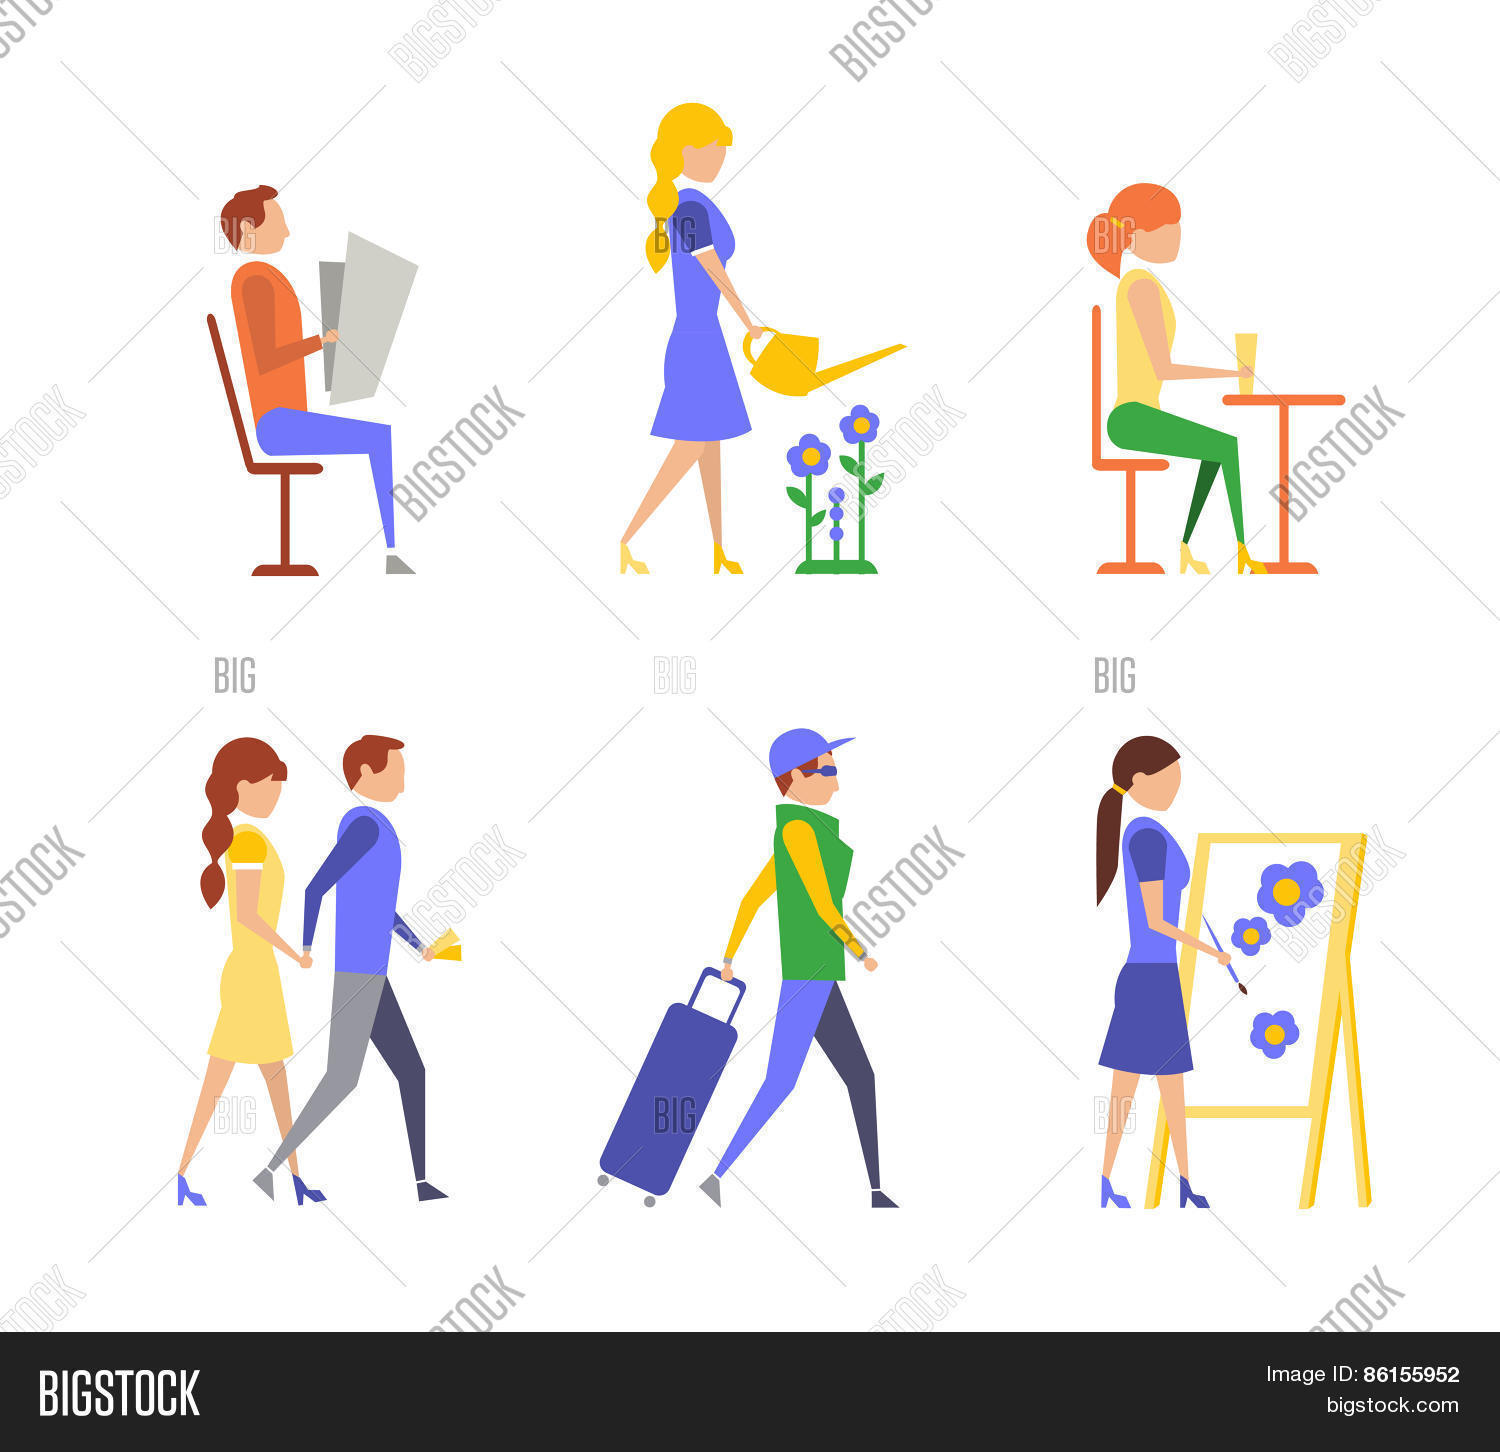 Physical Activity Clip Art Pictures To Pin